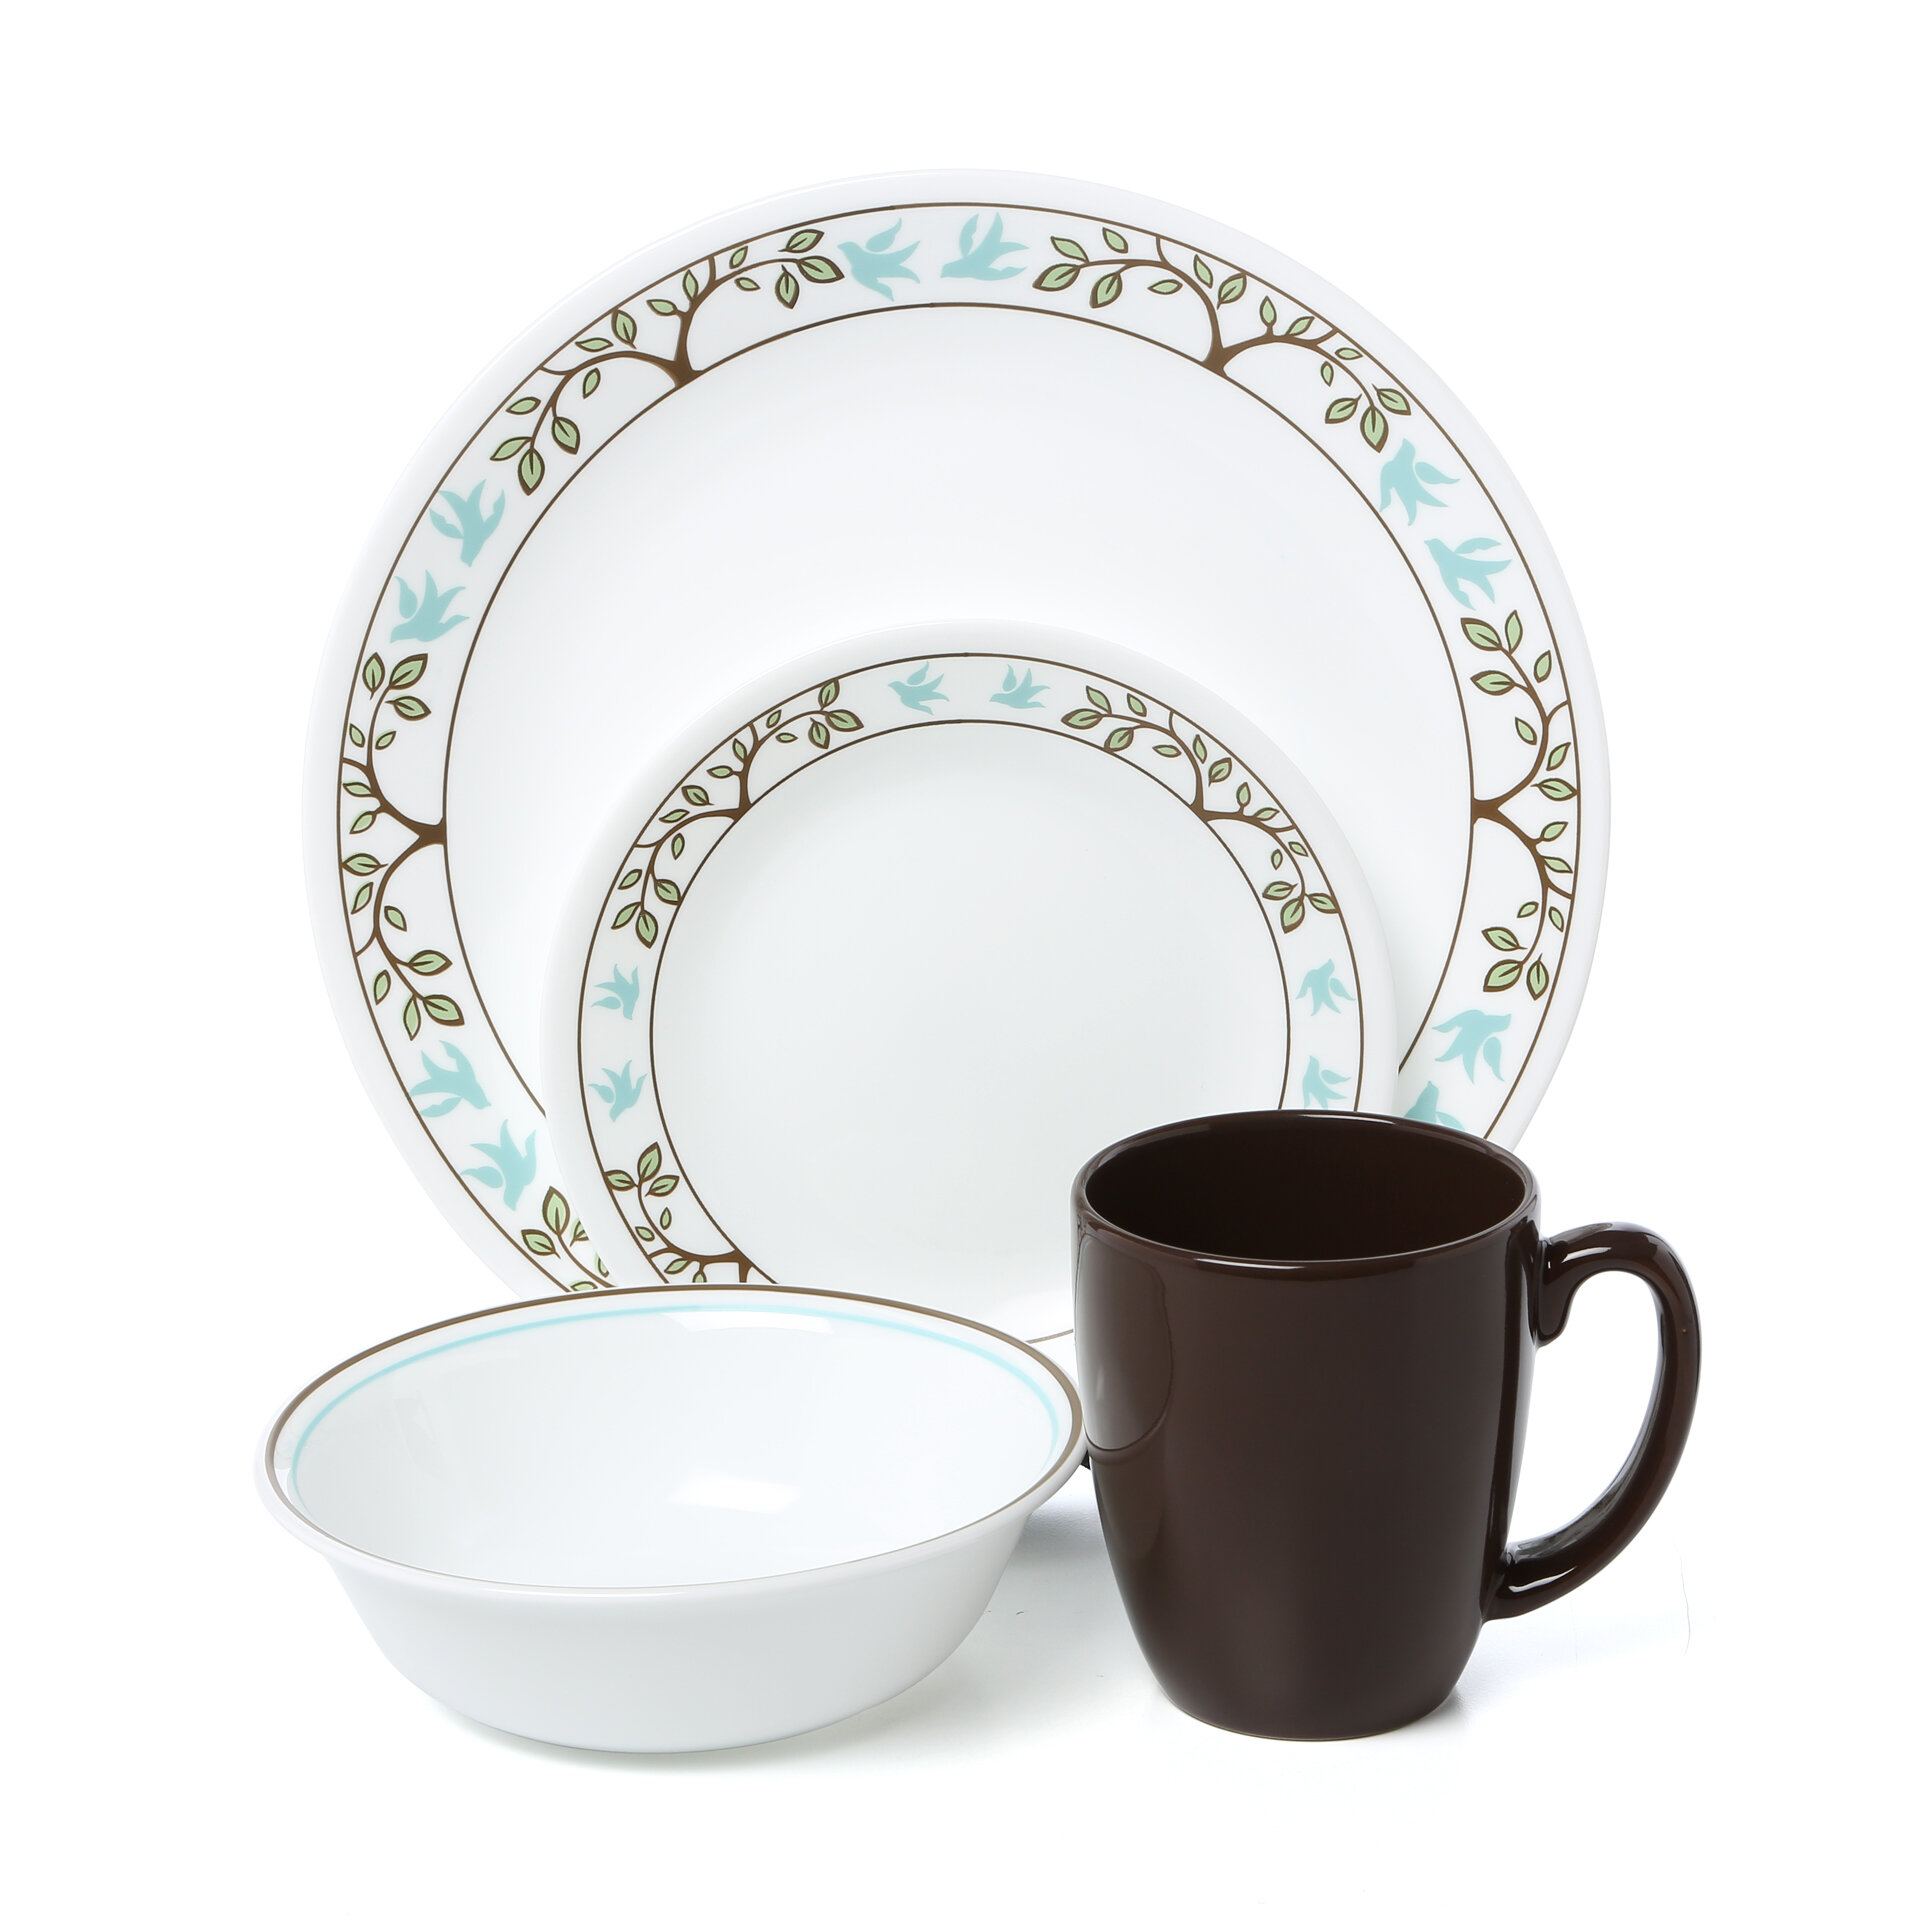 Corelle Livingware Tree Bird 16 Piece Dinnerware Set Service for 4 \u0026 Reviews | Wayfair  sc 1 st  Wayfair : bird dinnerware - pezcame.com